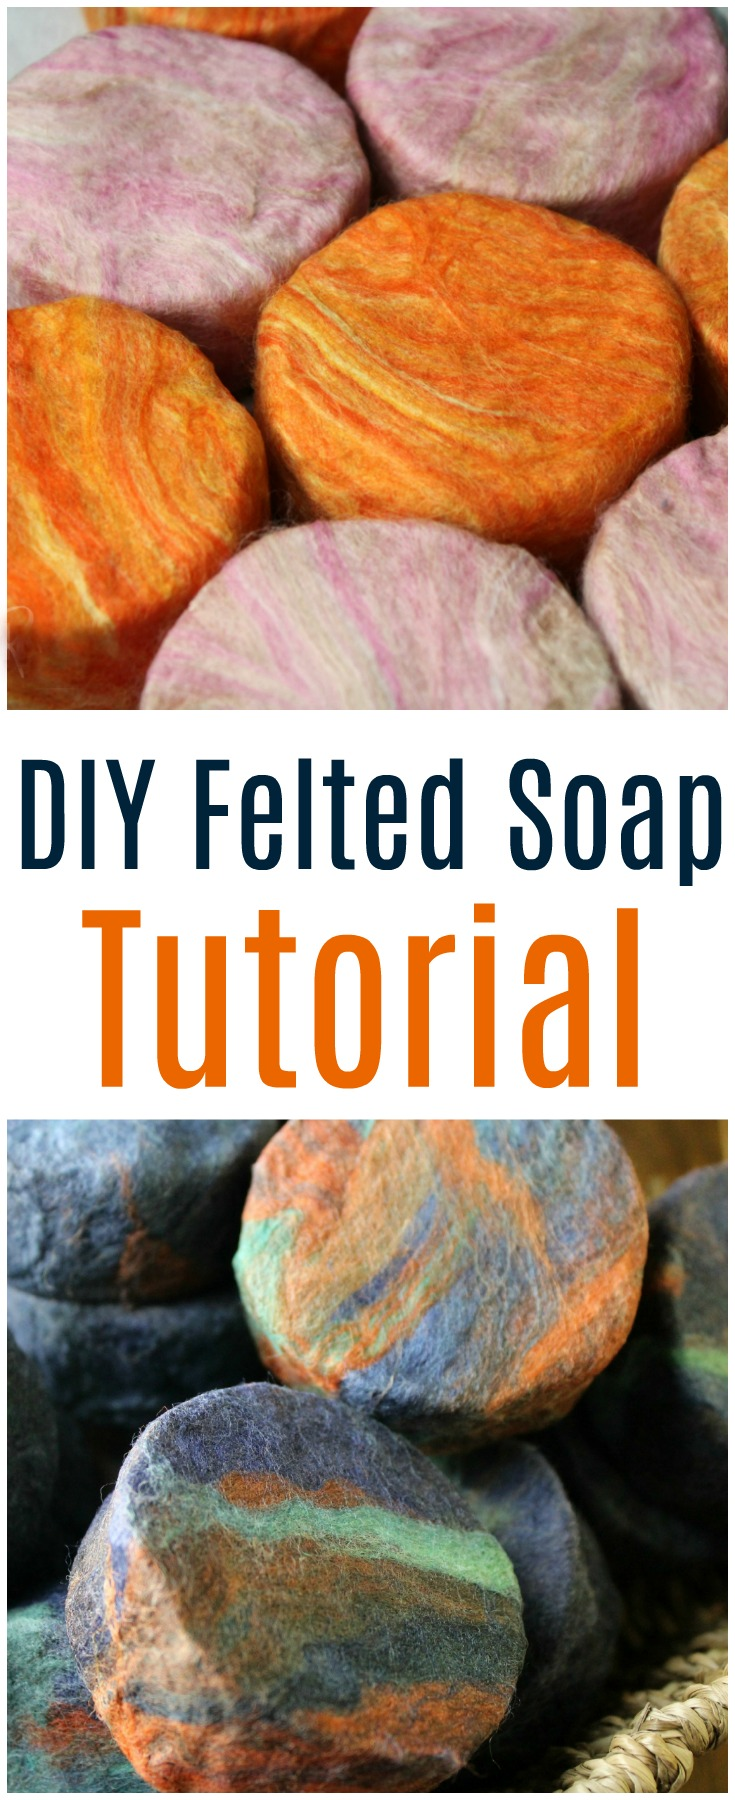 Learn how to make felted soap easily with this DIY Felted Soap tutorial. These soaps are a unique gift and are easy to make at home.  #feltedsoaps #soap #gifts #wool #merinowool #soapmaking #giftsforhim #giftsforher